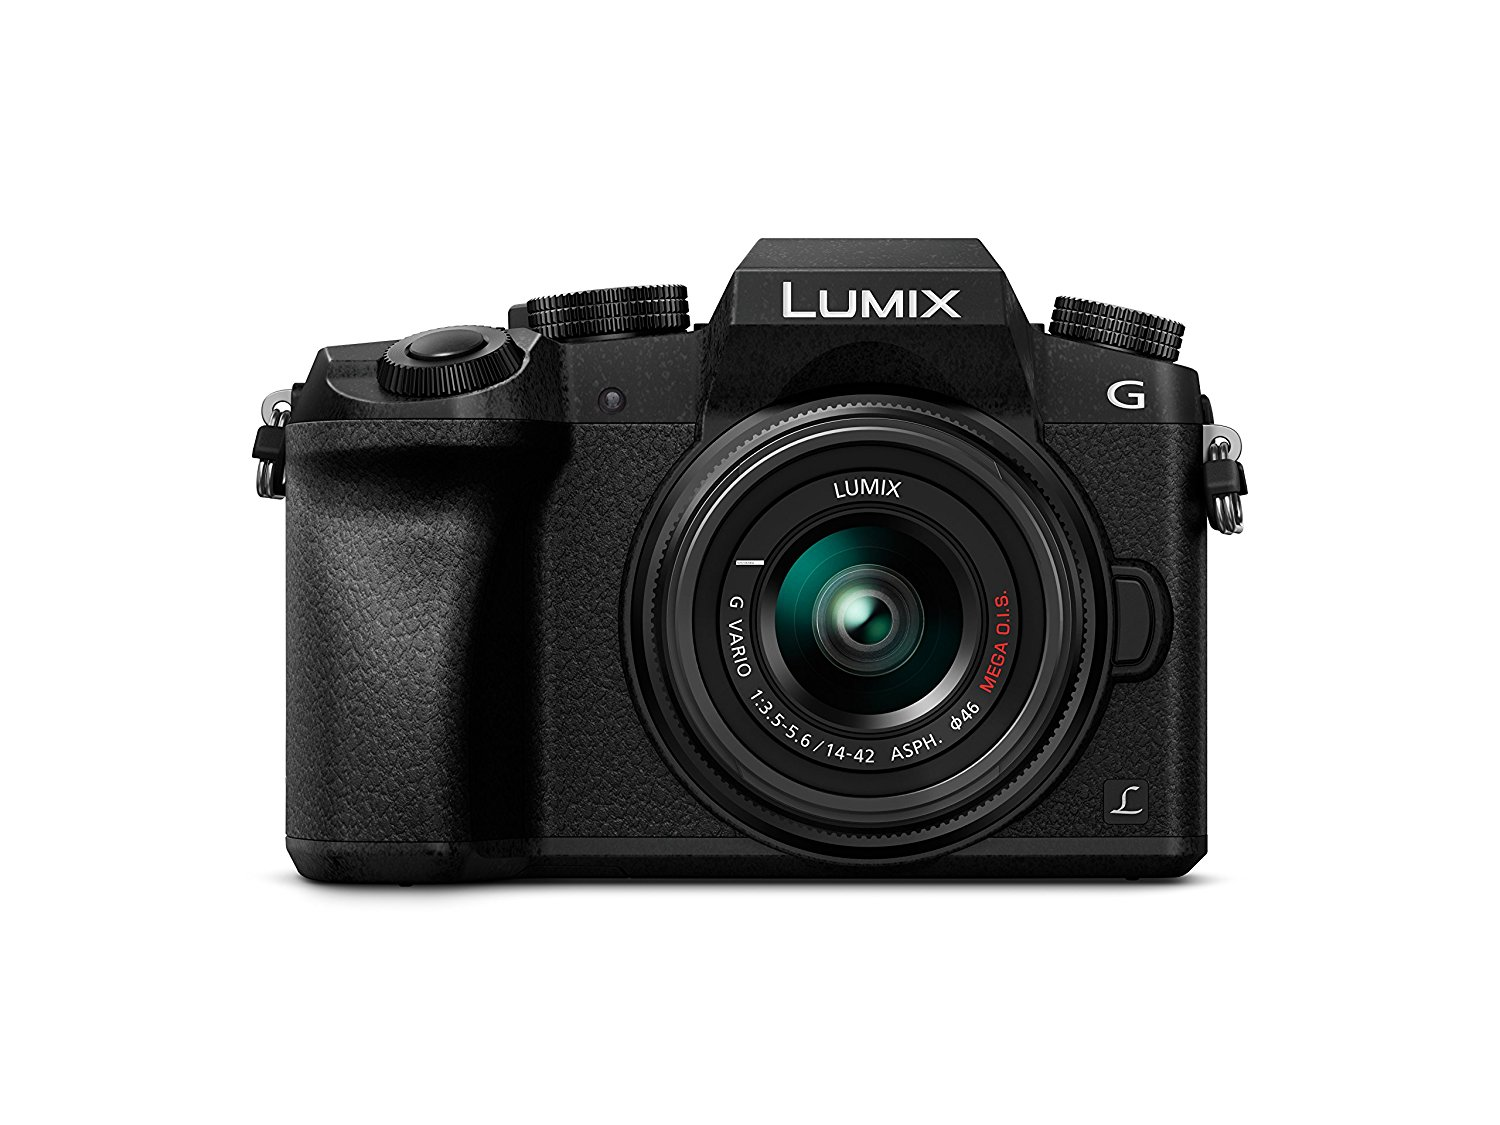 Panasonic Lumix DMC-G7 - Kit Cámara Digital DE 16 MP y Objetivo Standard Zoom LUMIX G Vario 14-42 mm, Color Negro